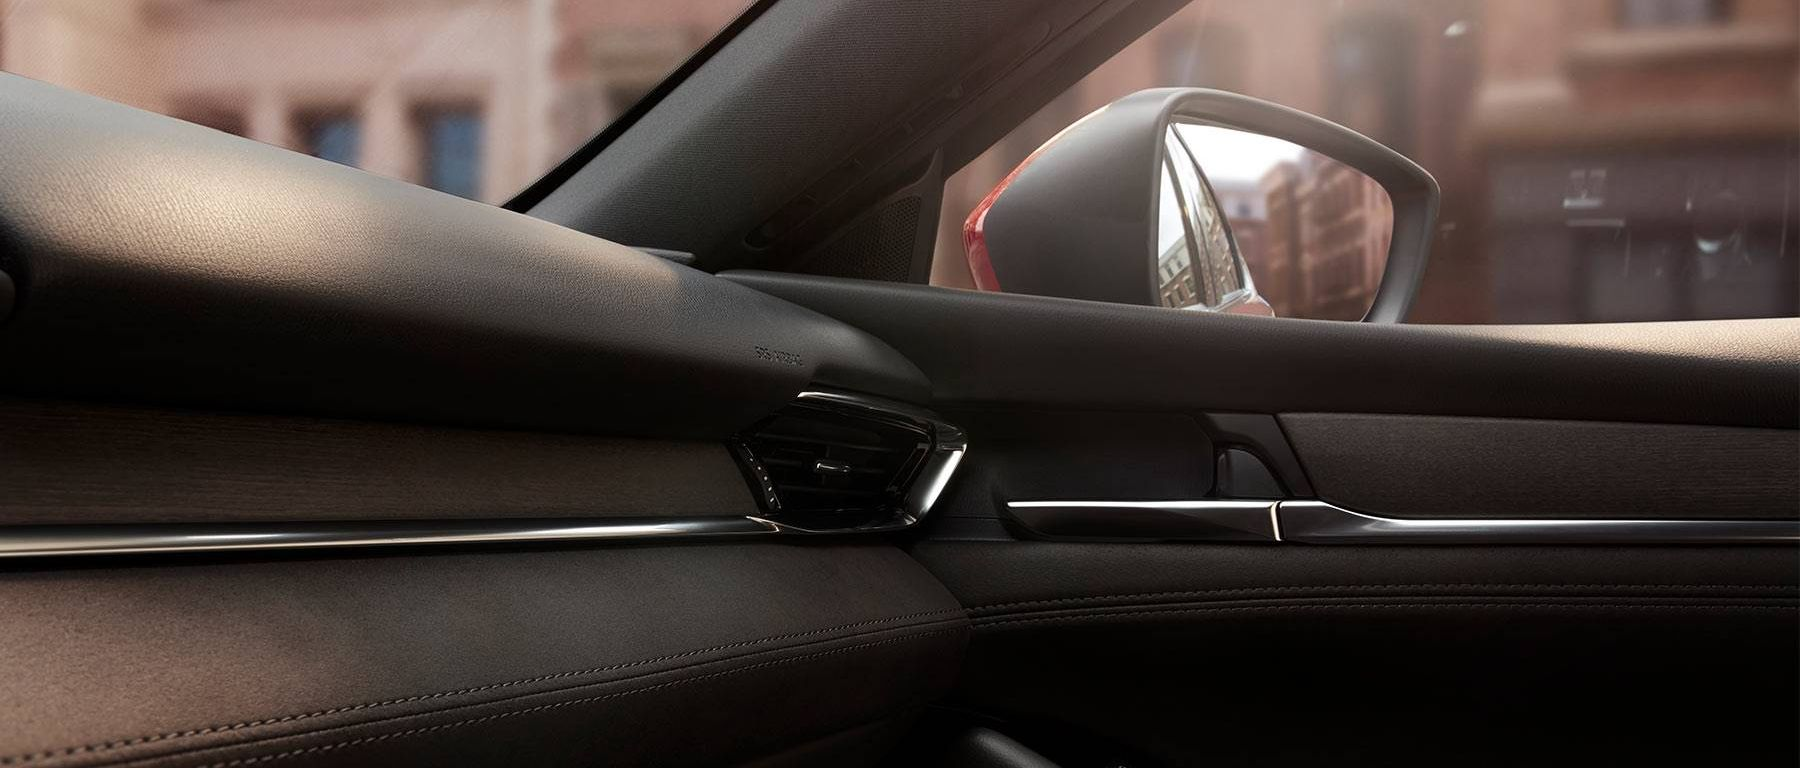 Attractive Style in the Mazda6